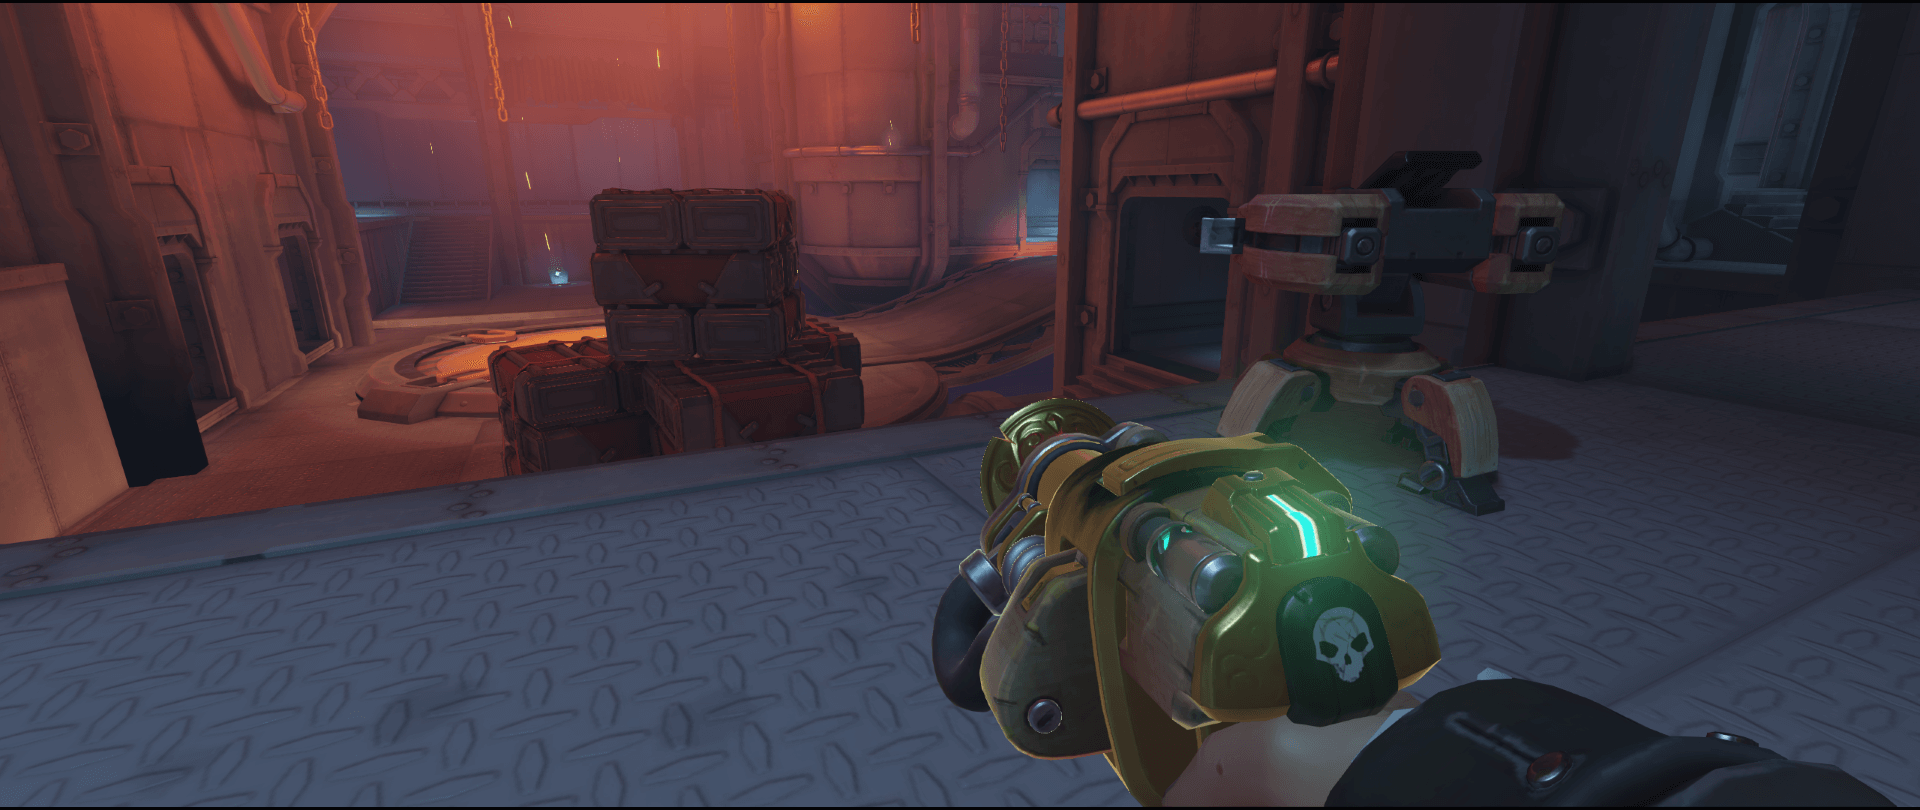 Torbjorn+turret+King's+Row+third+point+final+defense+right